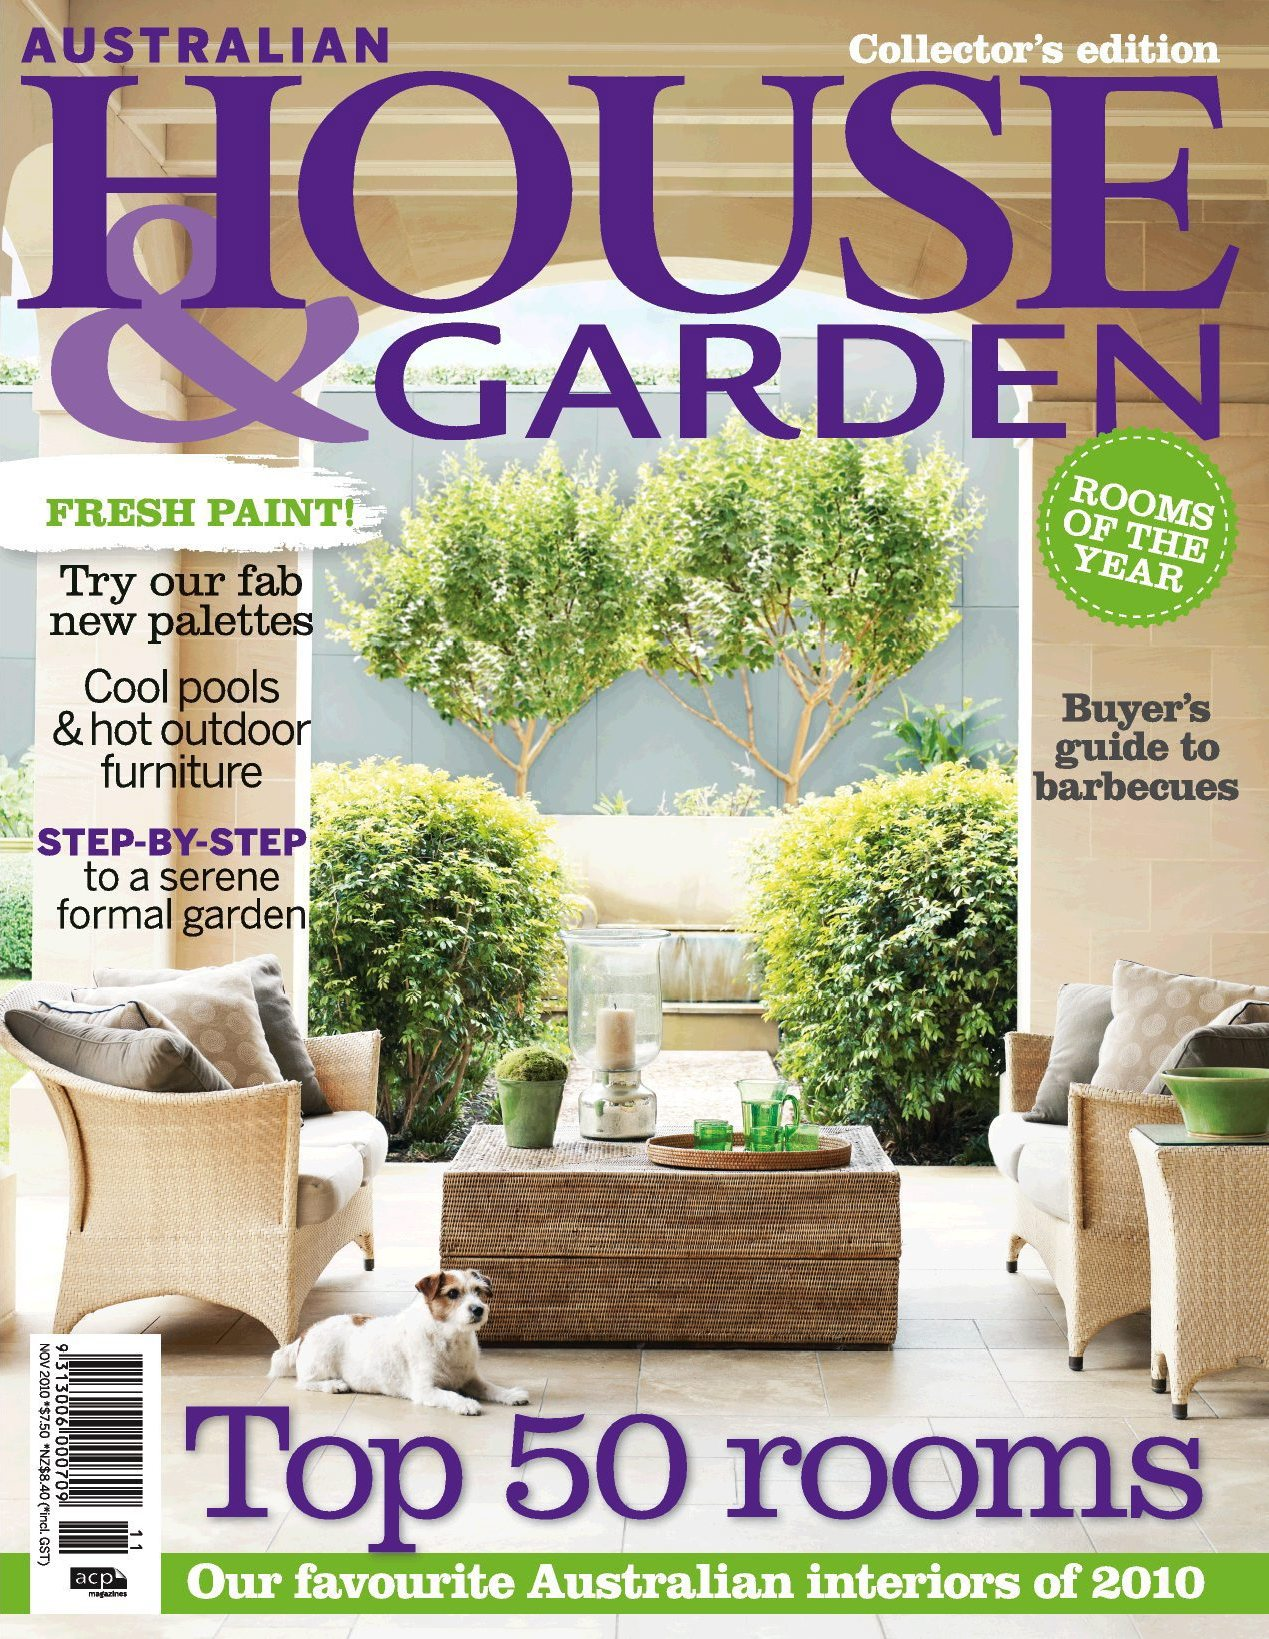 Top 50 Rooms Of 2010 Featured In November Issue Of Australian